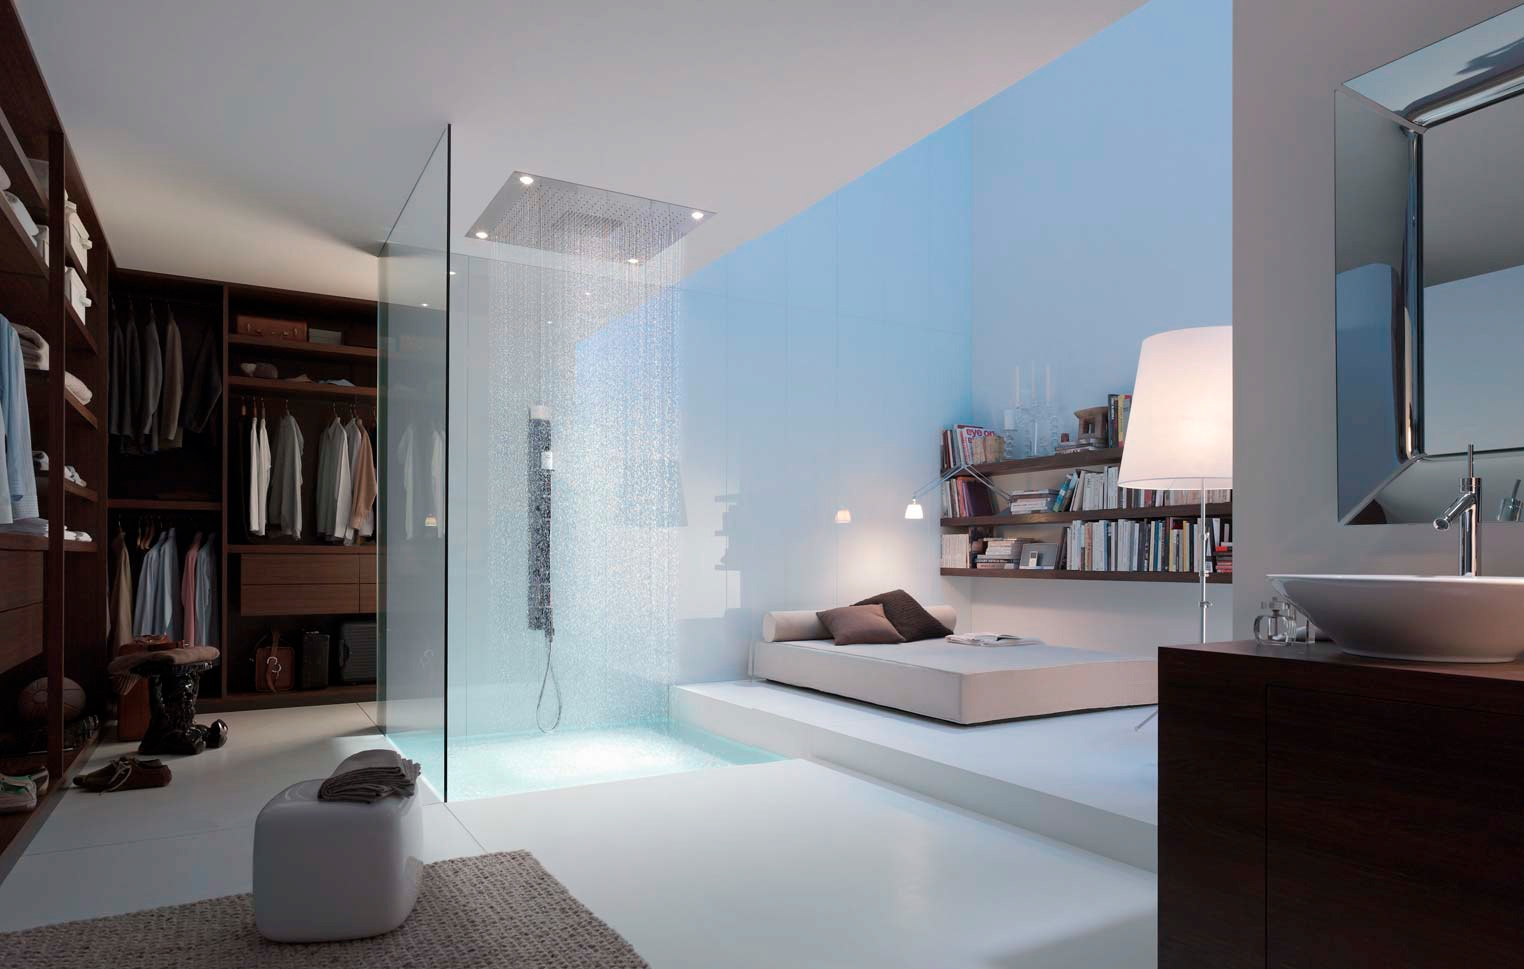 18 Unbelievable Showers You Will Never Want to Leave!